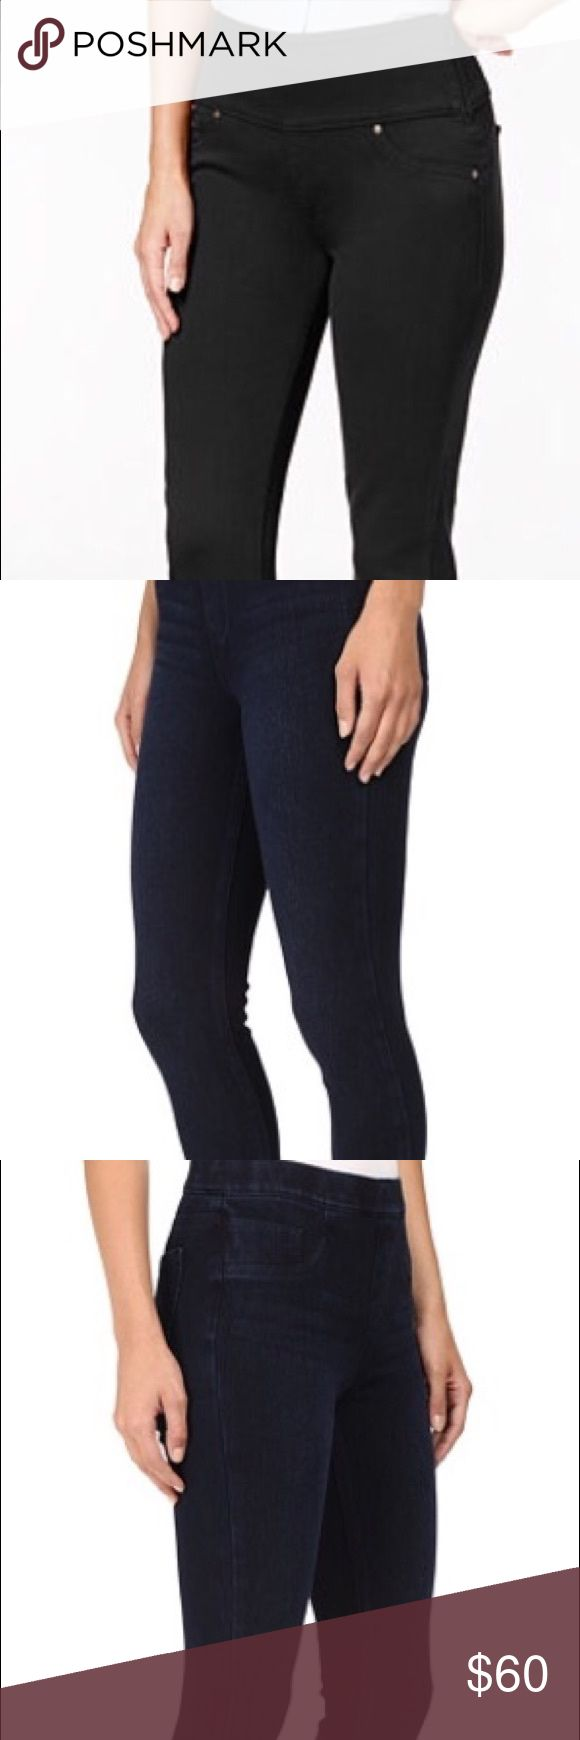 Spanx black denim leggings The slim's built in − Slim-X® shaping panel for comfortable smoothing. Light whiskering and light sanding visually slim. Deluxe fabric for a comfortable fit all day. Faux front pockets and functional back pockets offer the look of a classic five-pocket jean. Flattering full-length legging. Support Level: Shape. Body: 69% cotton, 26% polyester, 5% spandex. Size XL 14/16 SPANX Pants Leggings